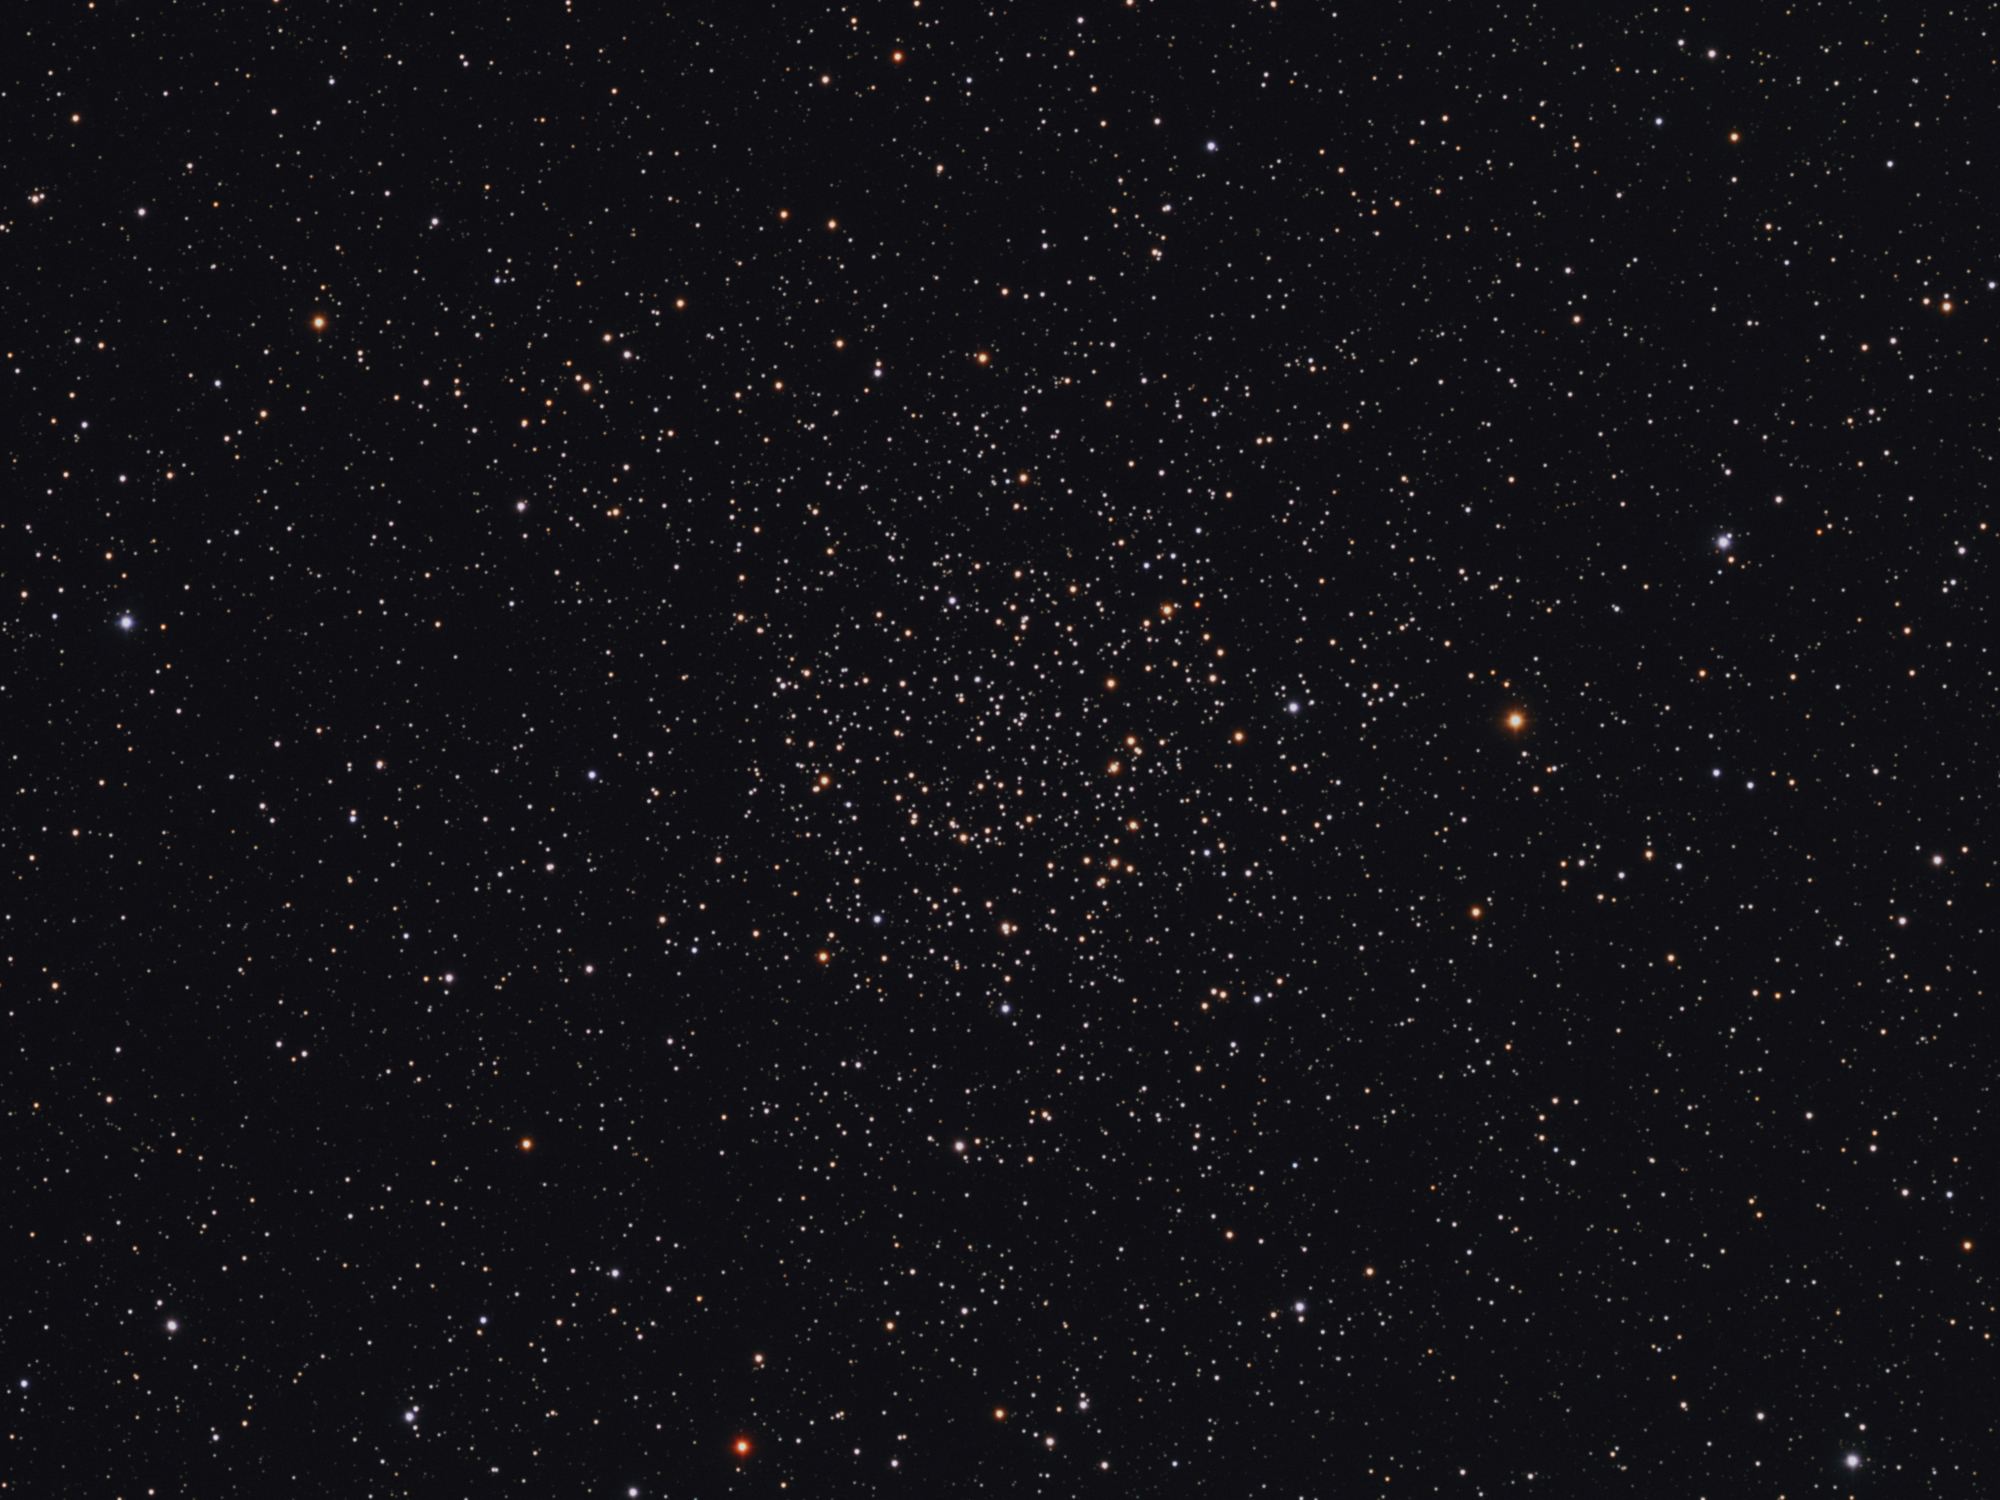 NGC 7789 - Cluster in Cassiopeia